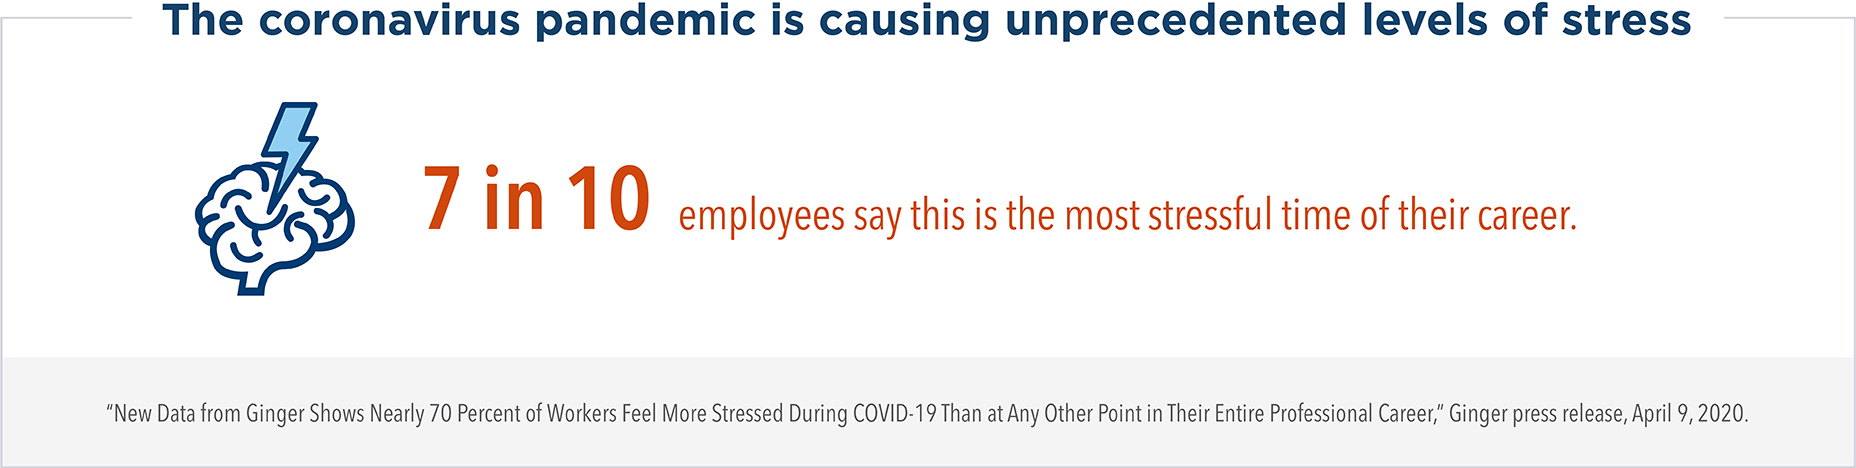 The coronavirus pandemic is causing unprecedented levels of stress. 7 in 10 employees say this is the most stressful time of their career.